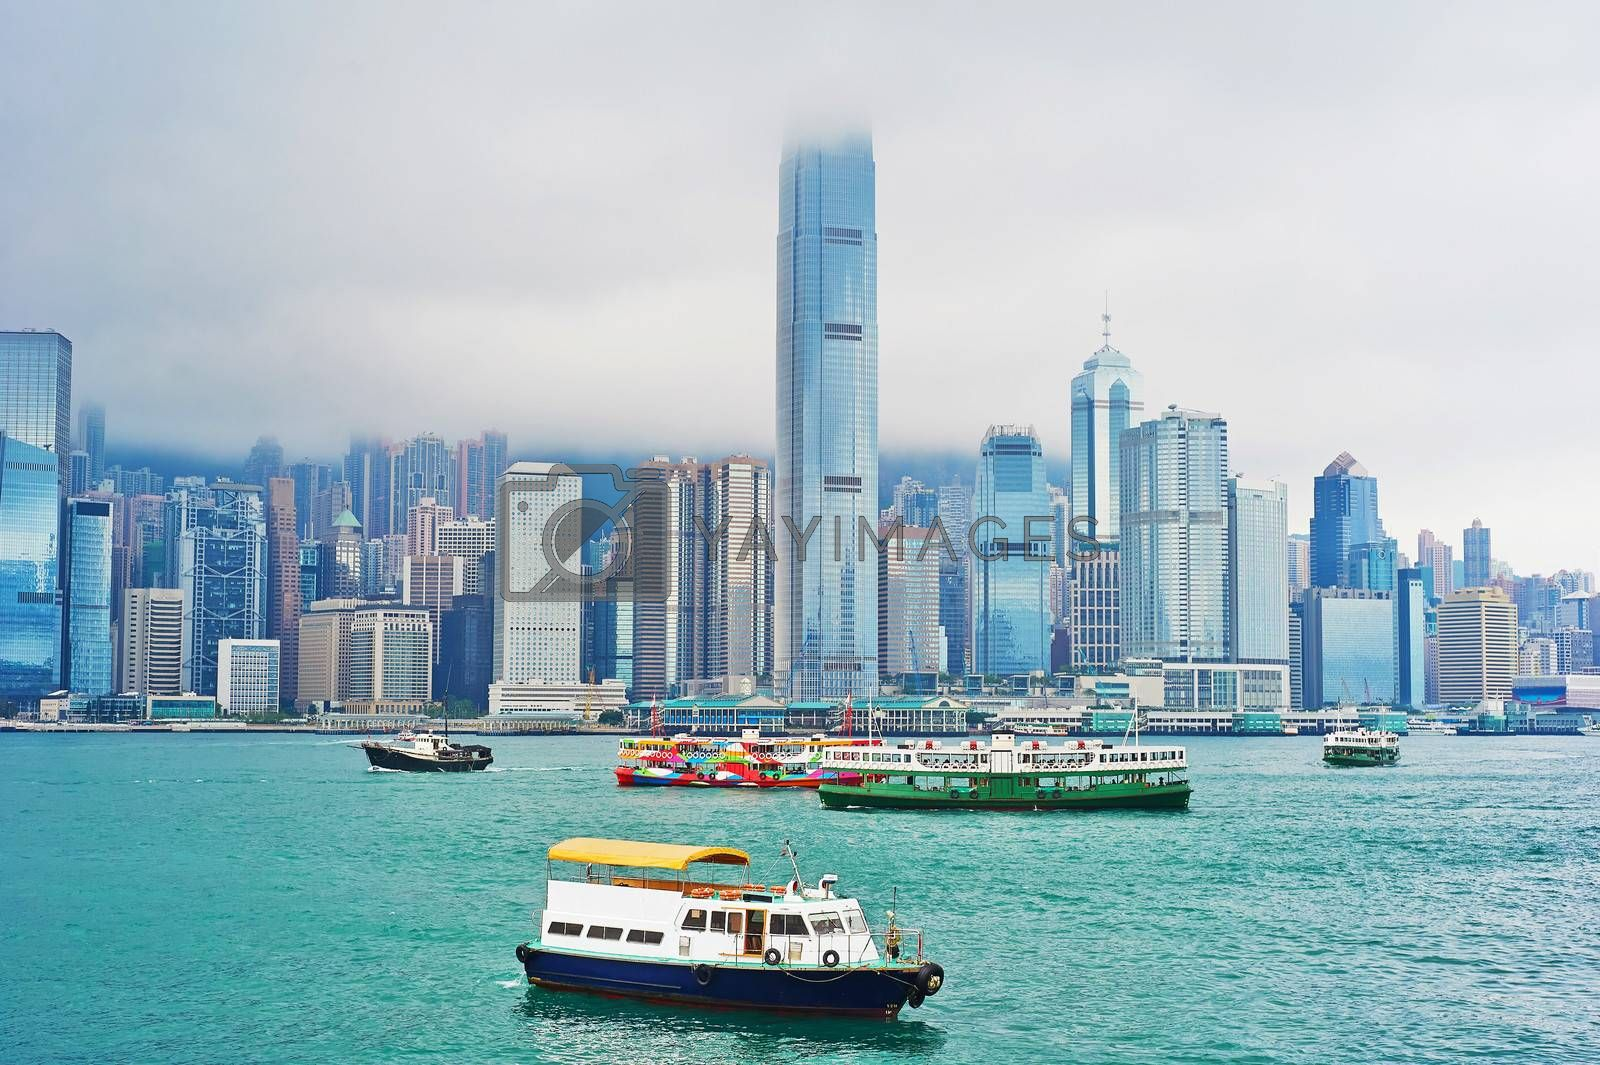 A lot of ships in Victoria harbor. View from Kowloon quayside. Hong Kong.